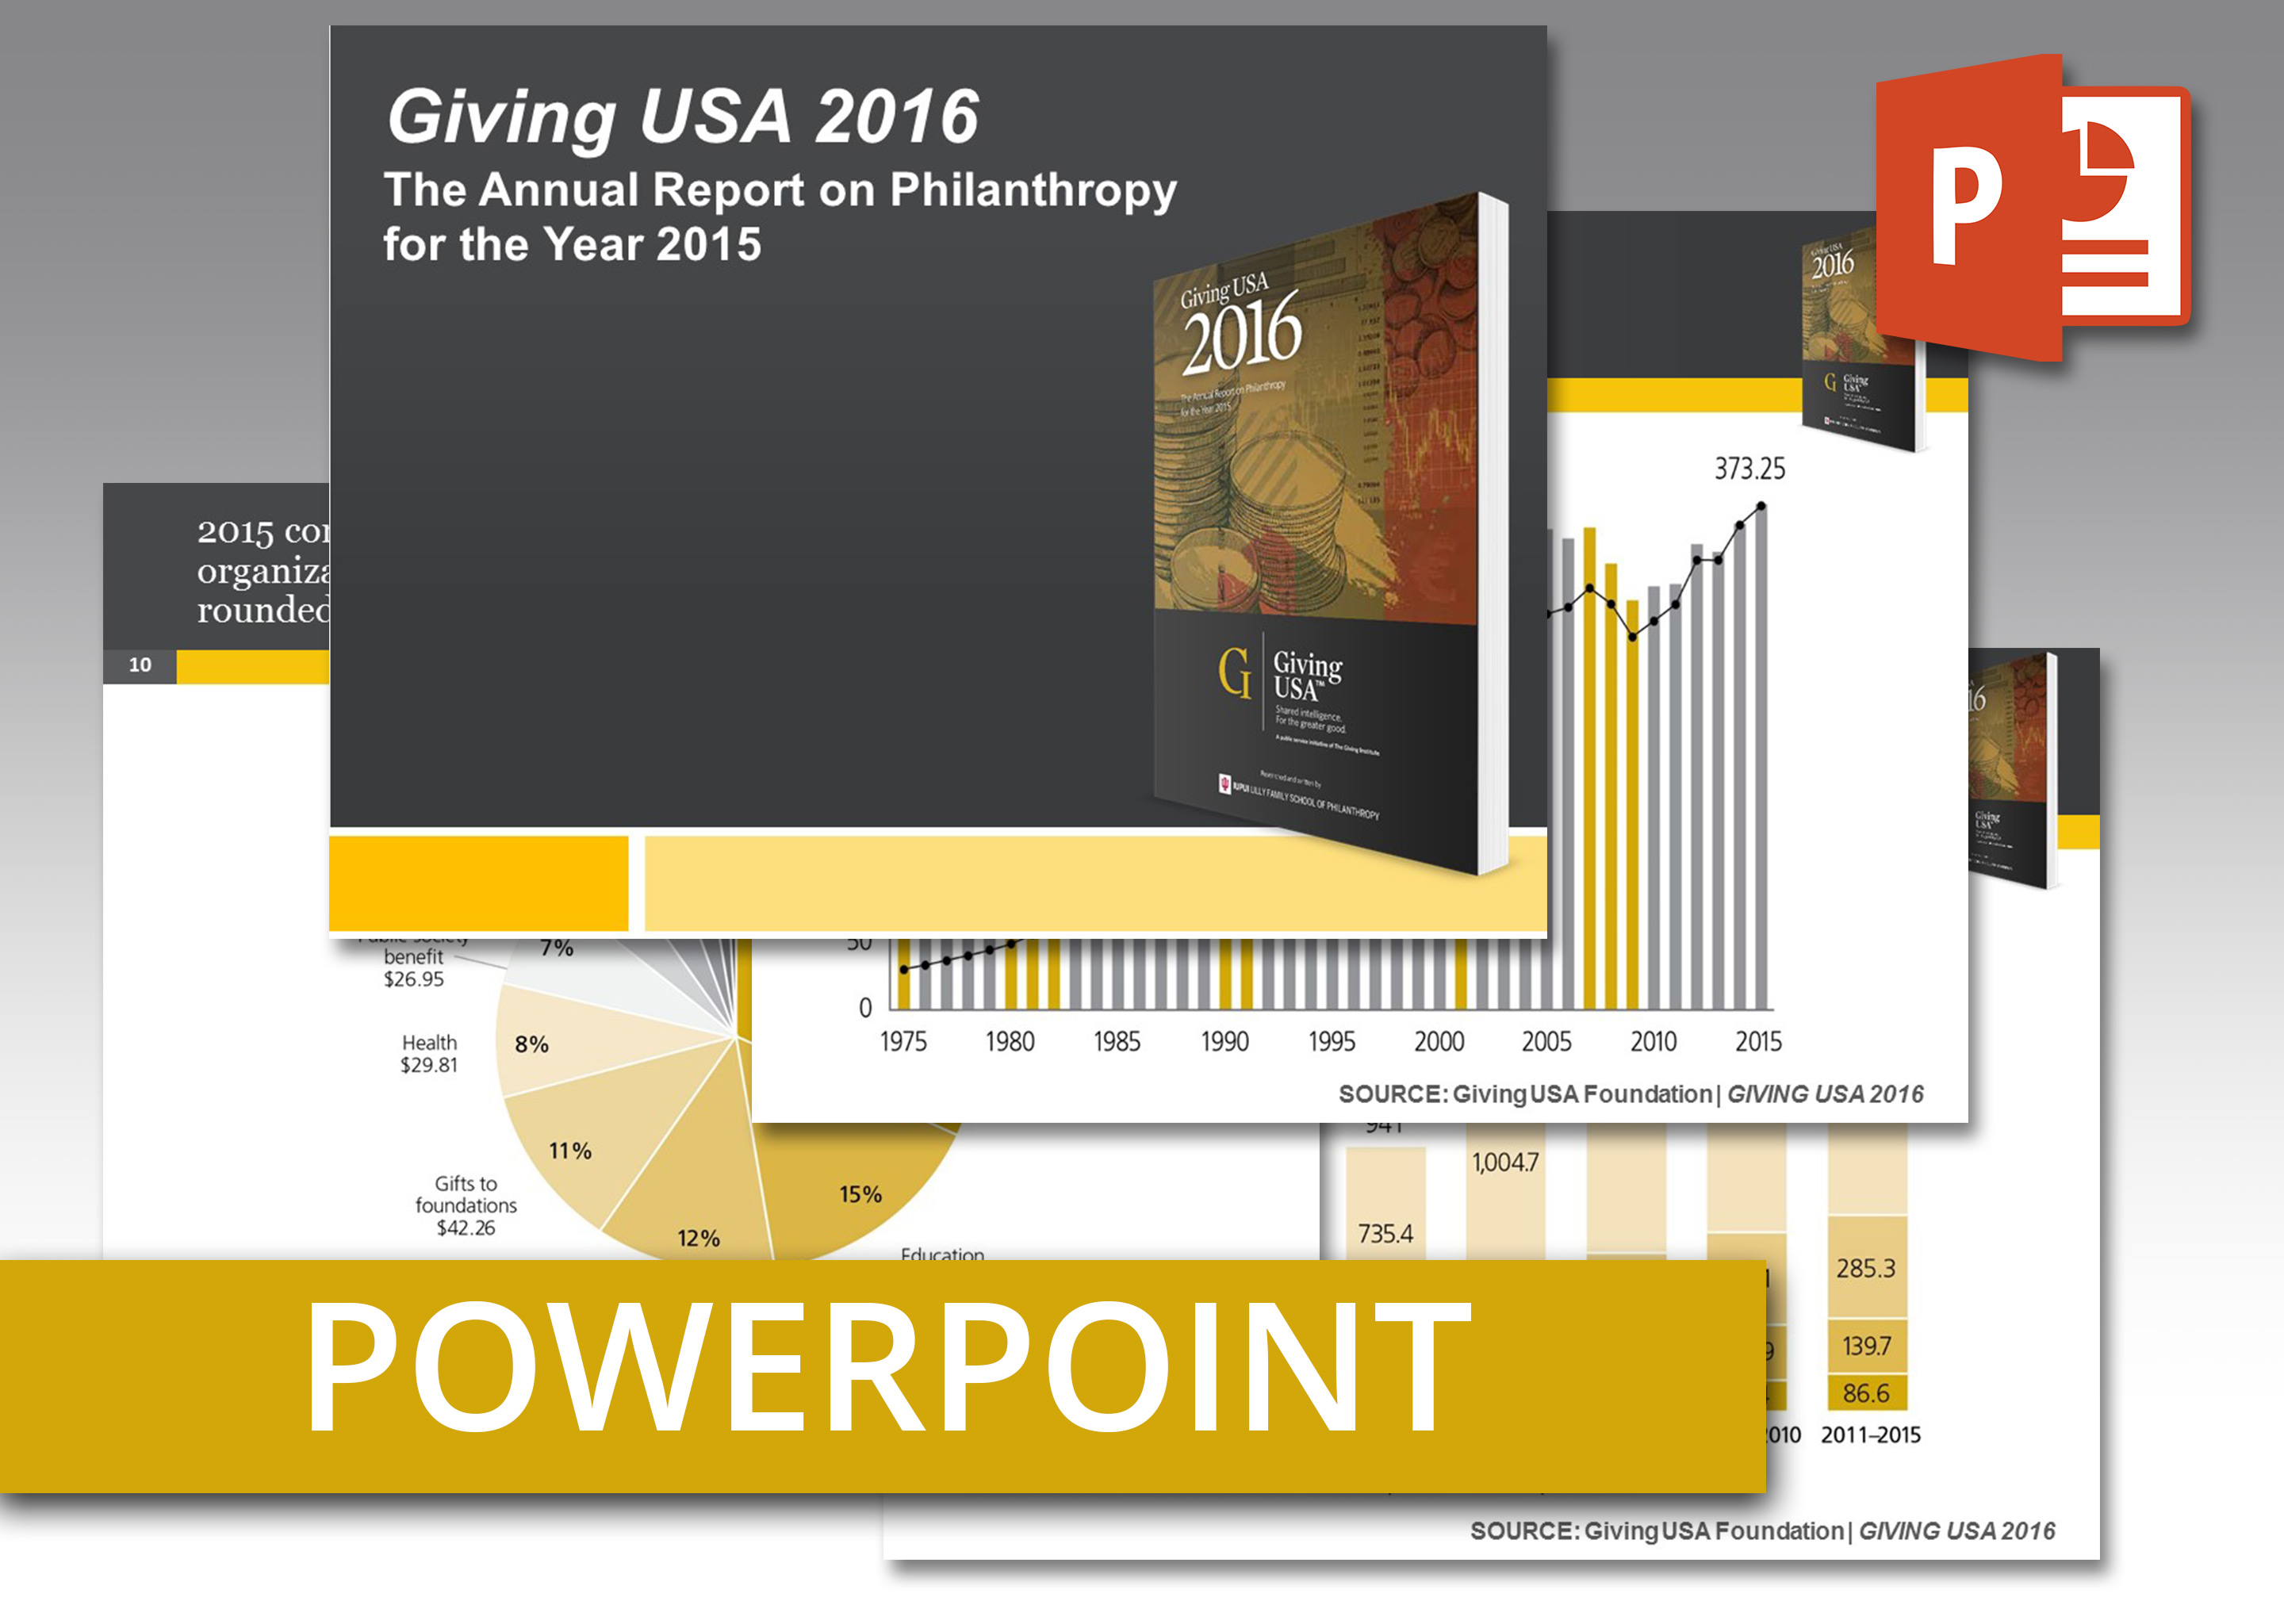 Coolmathgamesus  Stunning Giving Usa  Powerpoint An Easytouse Presentation Of Report  With Gorgeous Giving Usa  Powerpoint An Easytouse Presentation Of Report Findings Including Talking Points With Amusing How To Add Video In Powerpoint Also Adding Narration To Powerpoint In Addition Powerpoint Harvey Balls And Dynamic Powerpoint Presentations As Well As Family Feud Game Template Powerpoint Free Additionally Free Powerpoint Poster Templates From Givingusaorg With Coolmathgamesus  Gorgeous Giving Usa  Powerpoint An Easytouse Presentation Of Report  With Amusing Giving Usa  Powerpoint An Easytouse Presentation Of Report Findings Including Talking Points And Stunning How To Add Video In Powerpoint Also Adding Narration To Powerpoint In Addition Powerpoint Harvey Balls From Givingusaorg